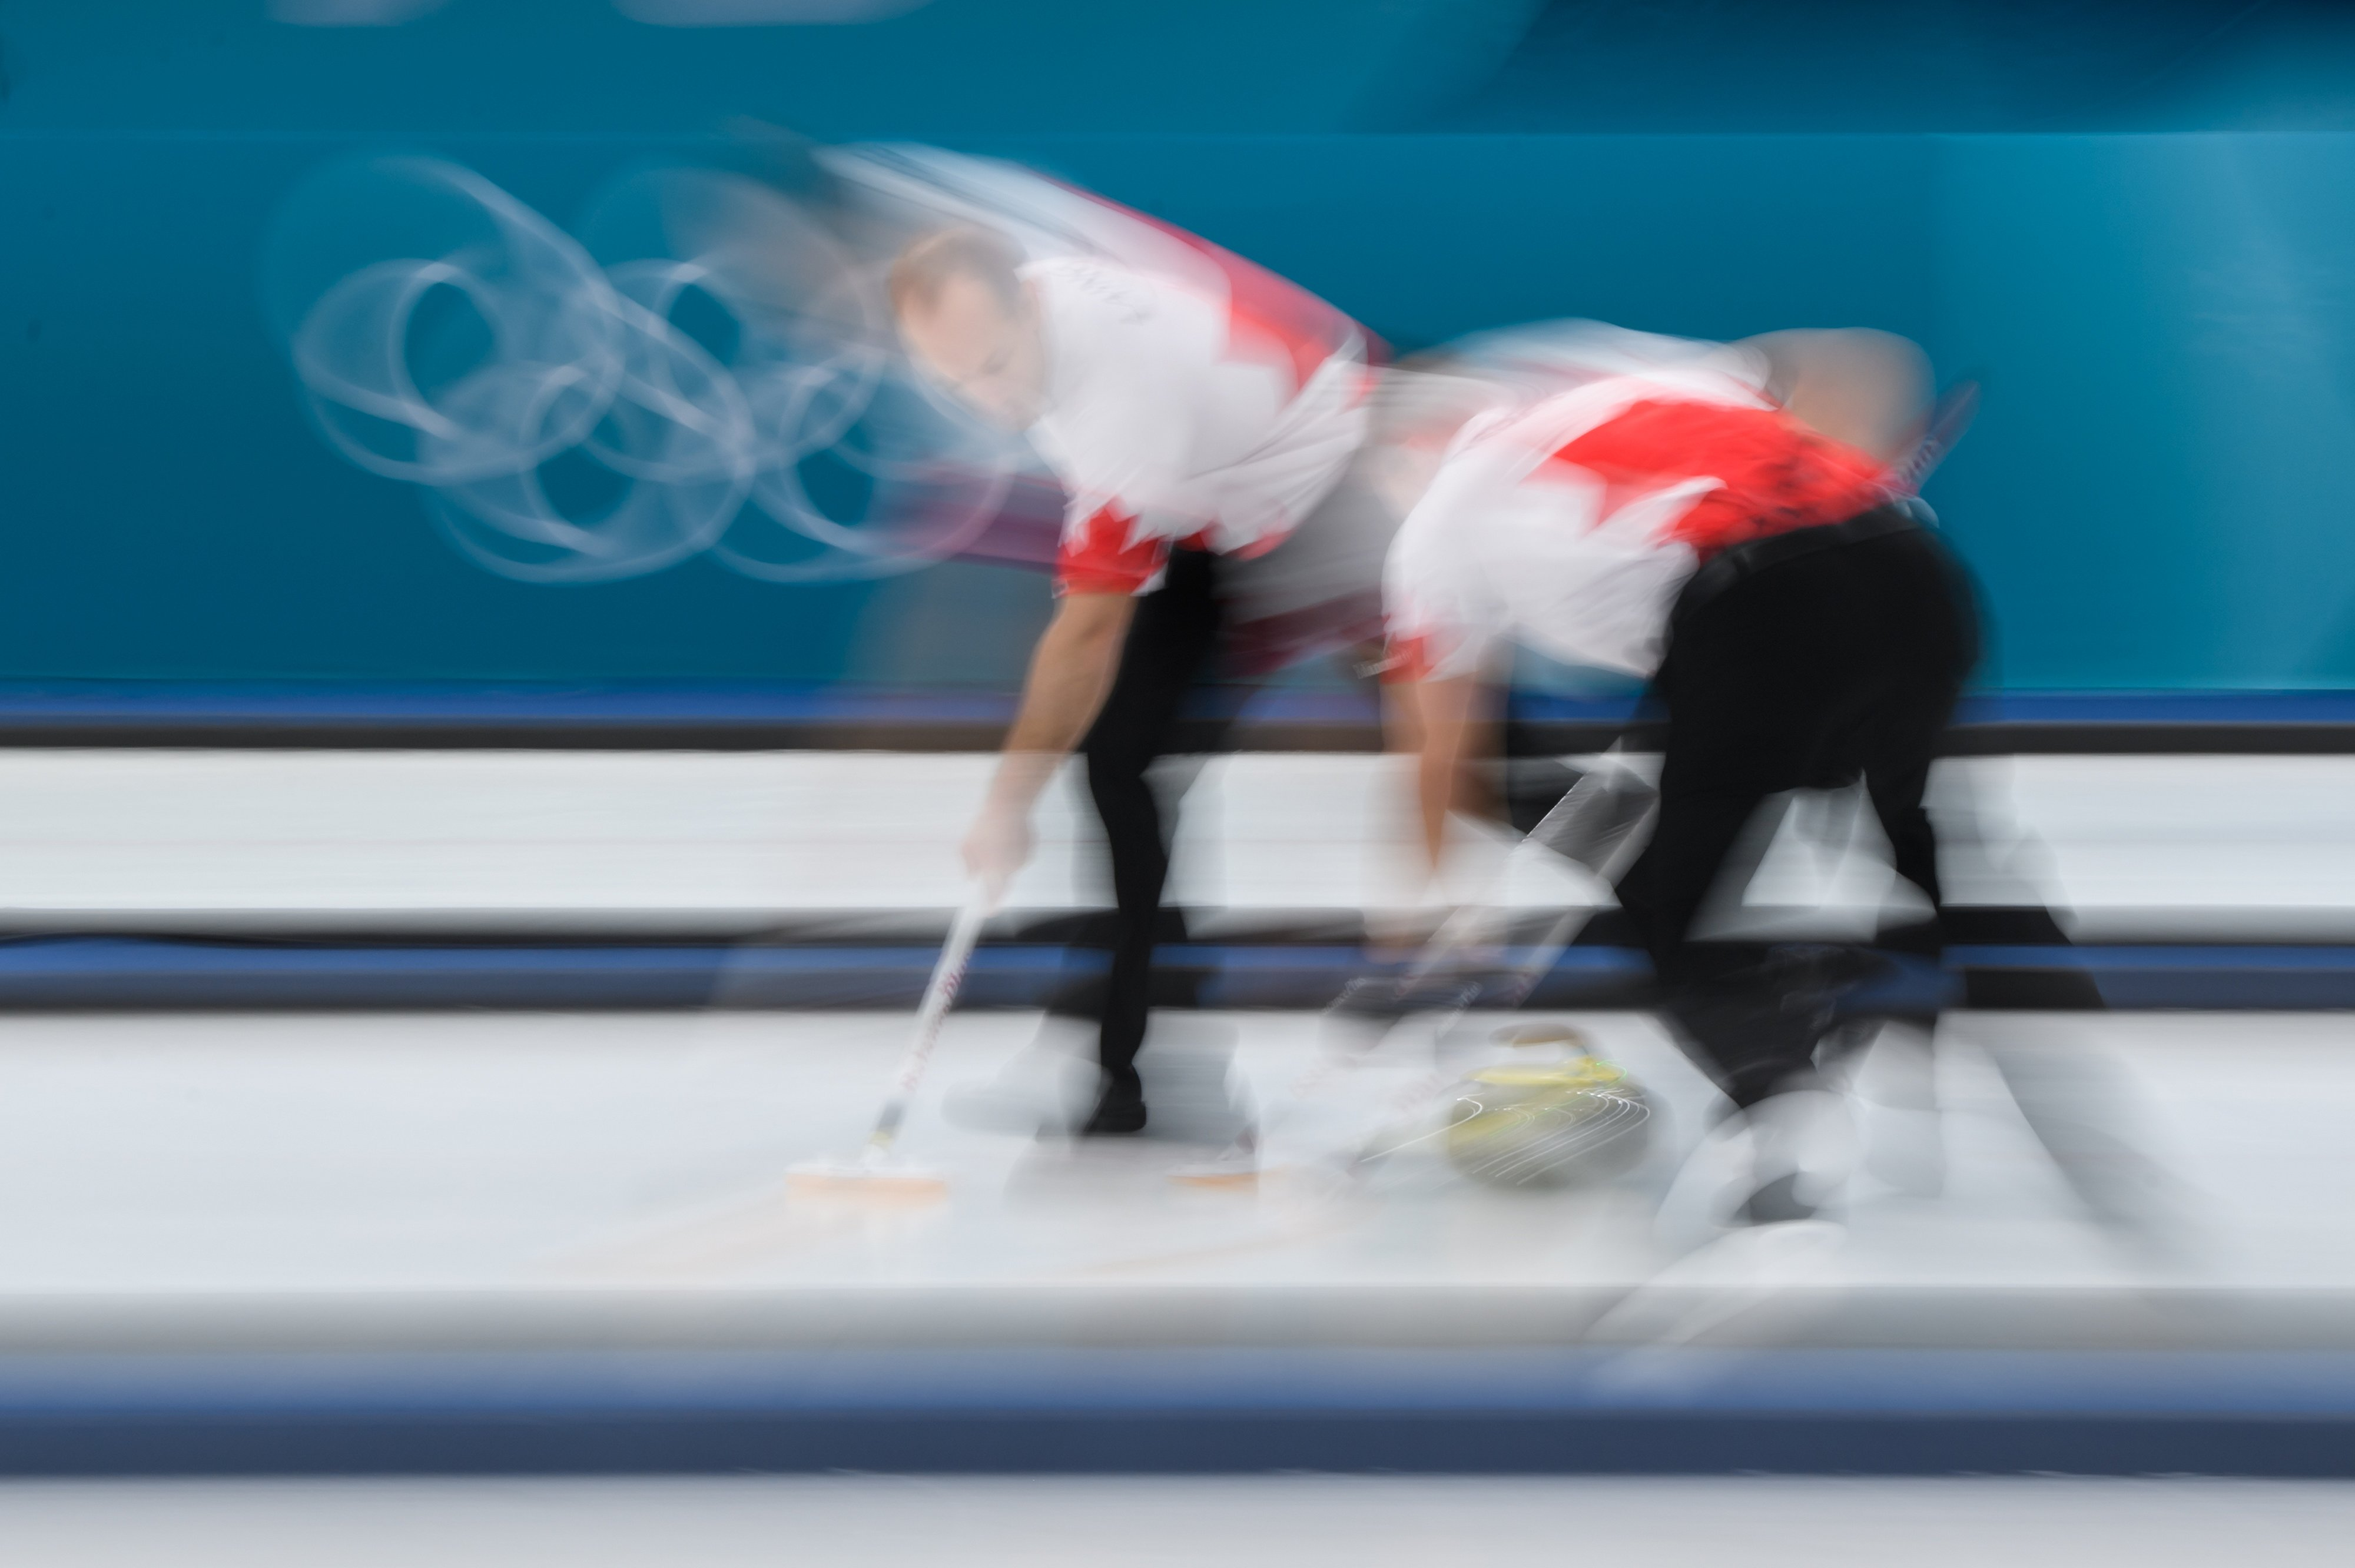 Blurry photo of two curlers sweeping